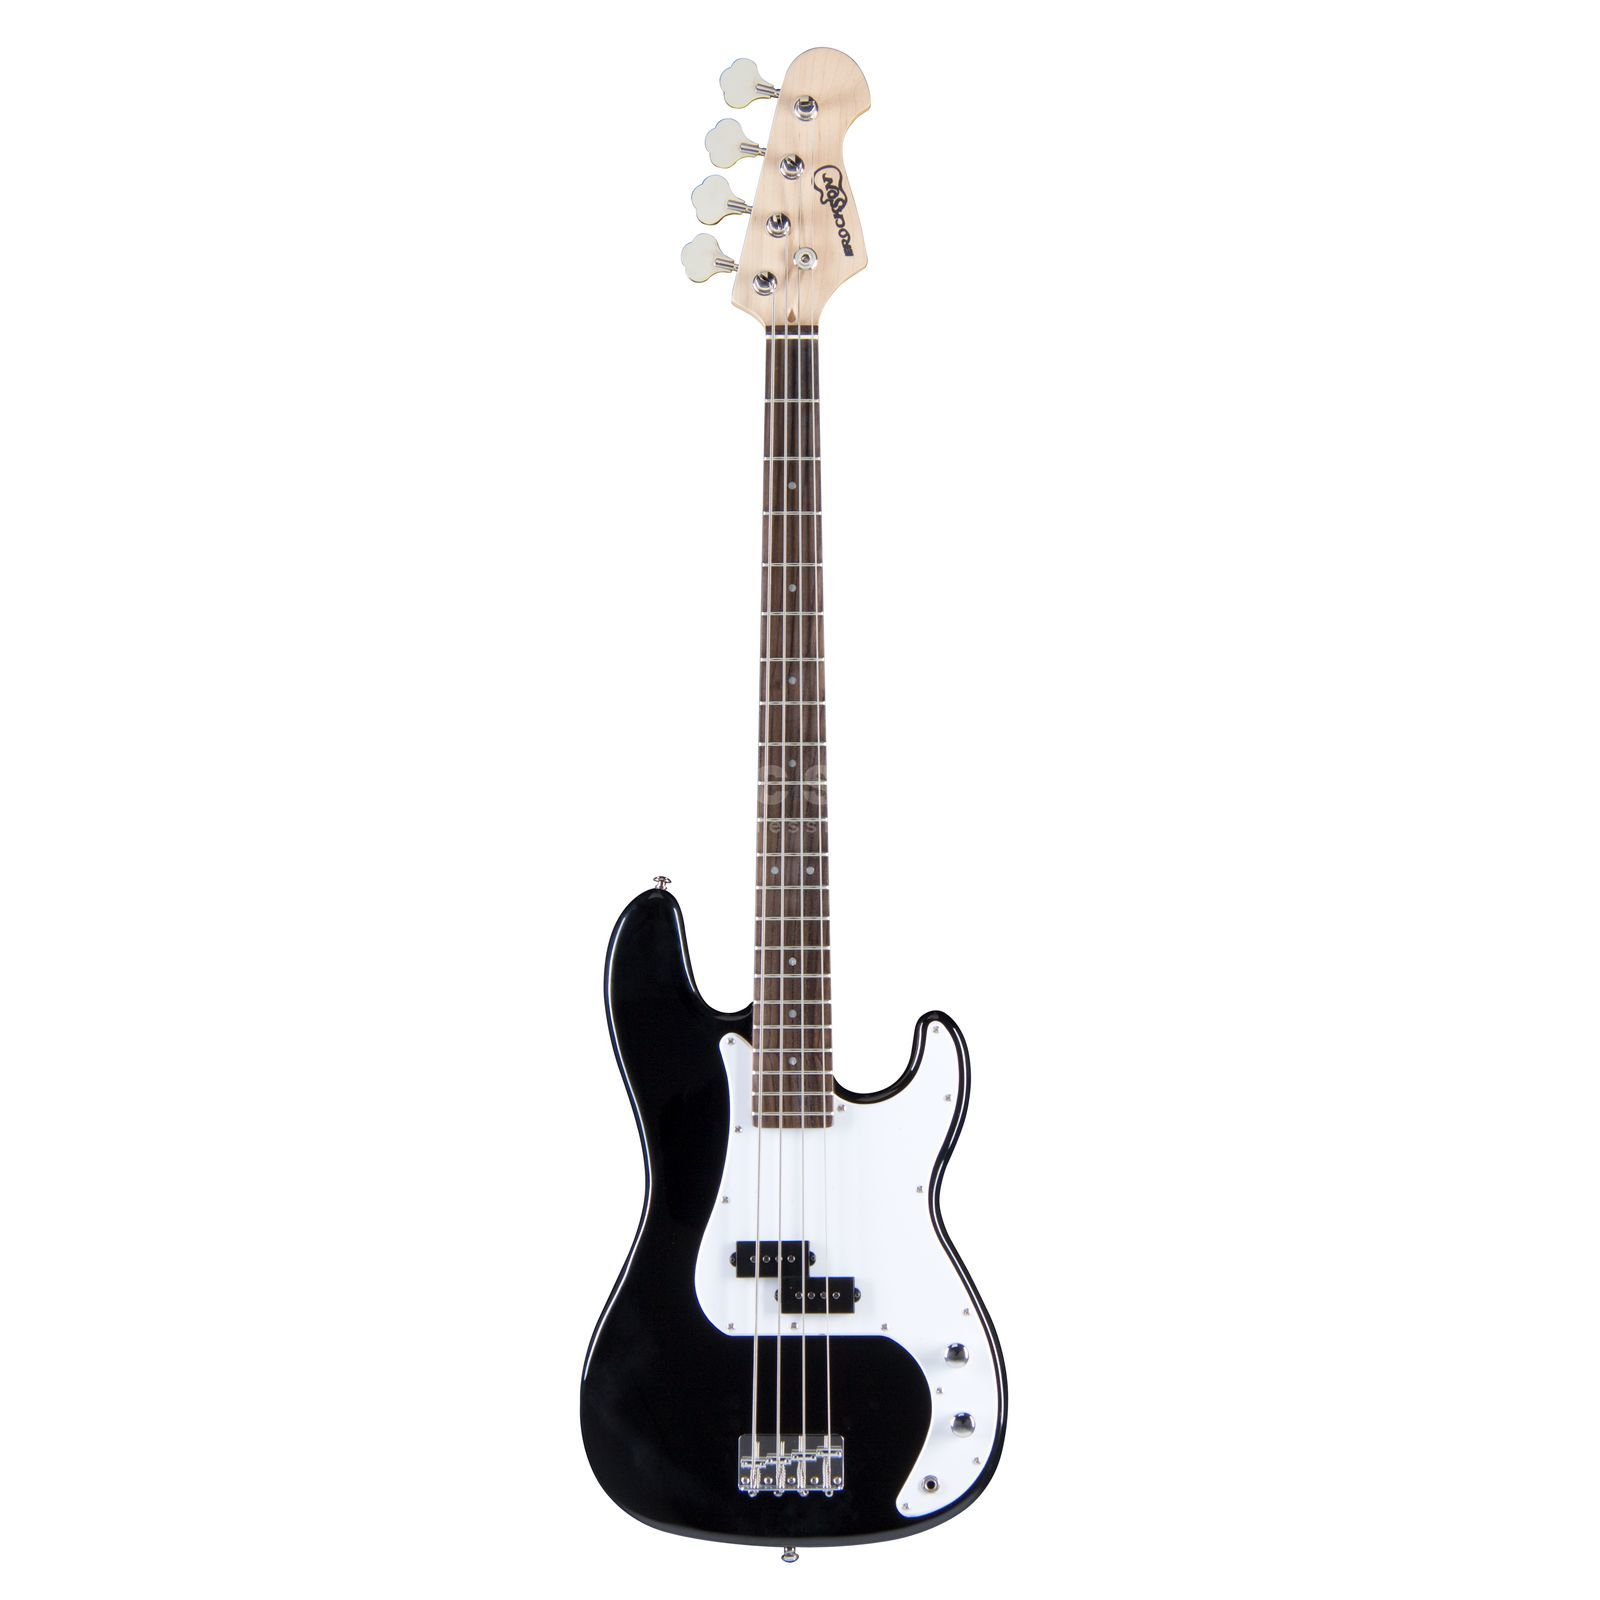 Rockson R-PB66 BK 4-String E-Bass Guitar, Black High gloss Immagine prodotto